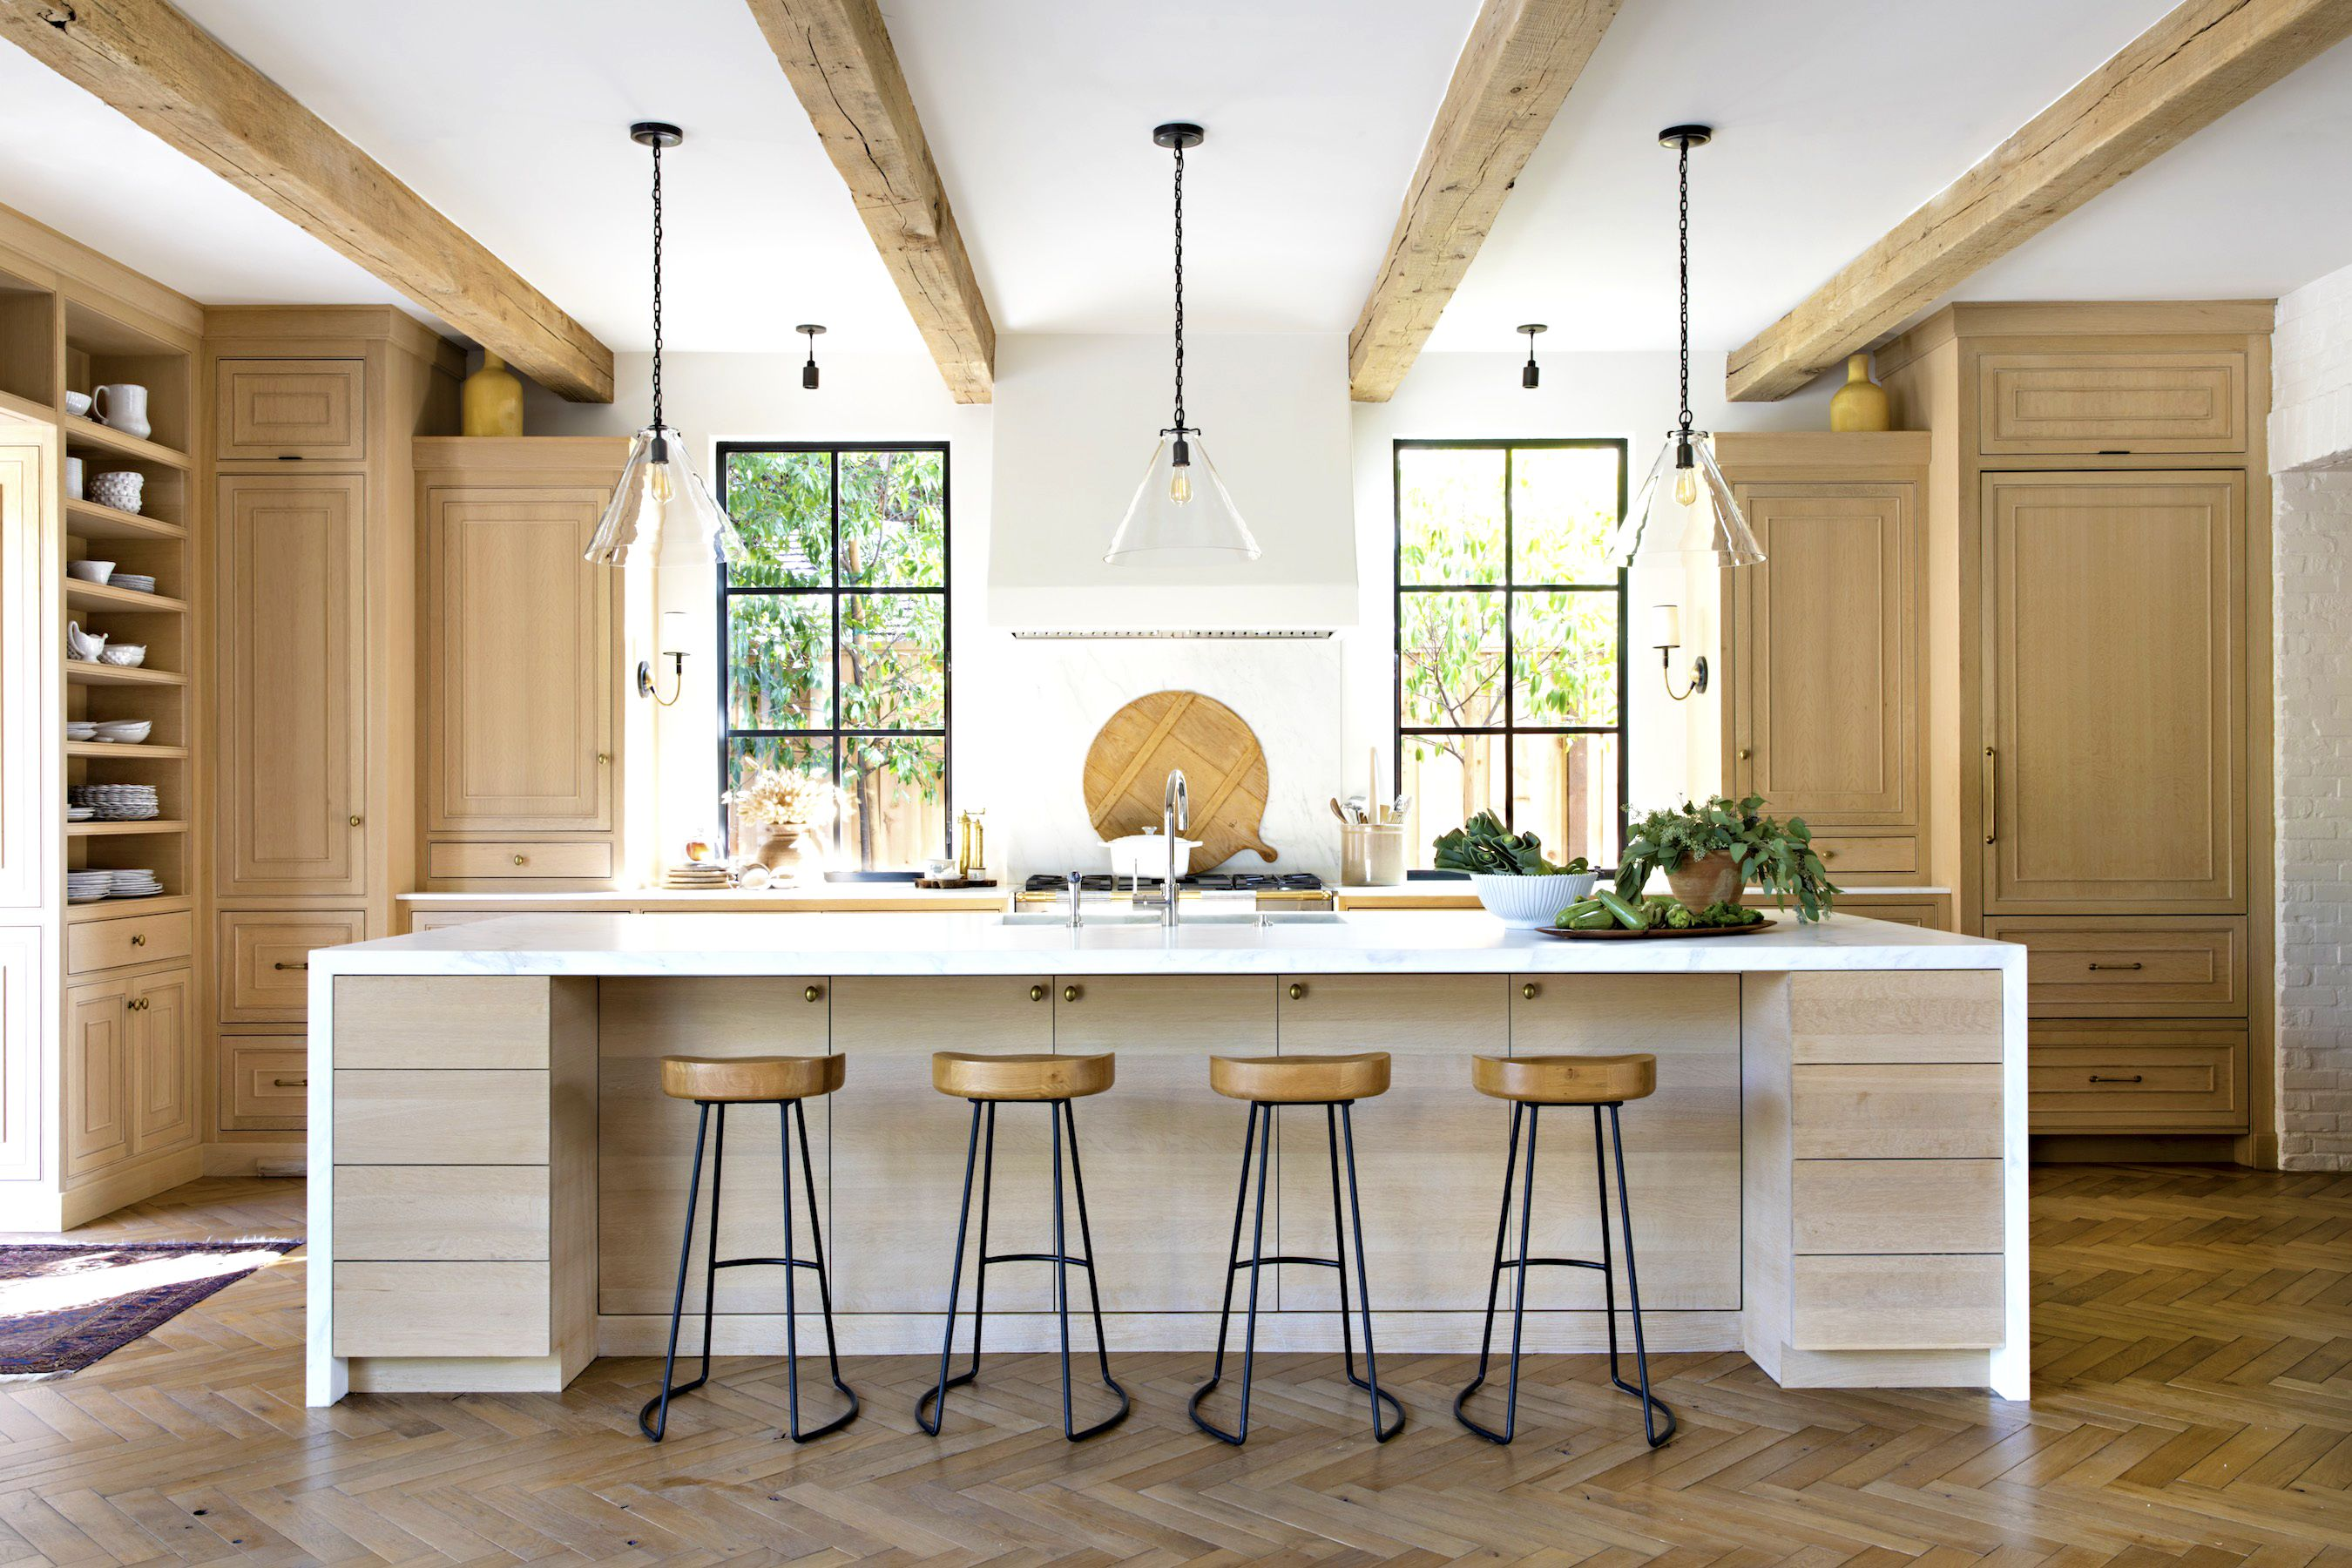 Molly Britt's California Kitchen